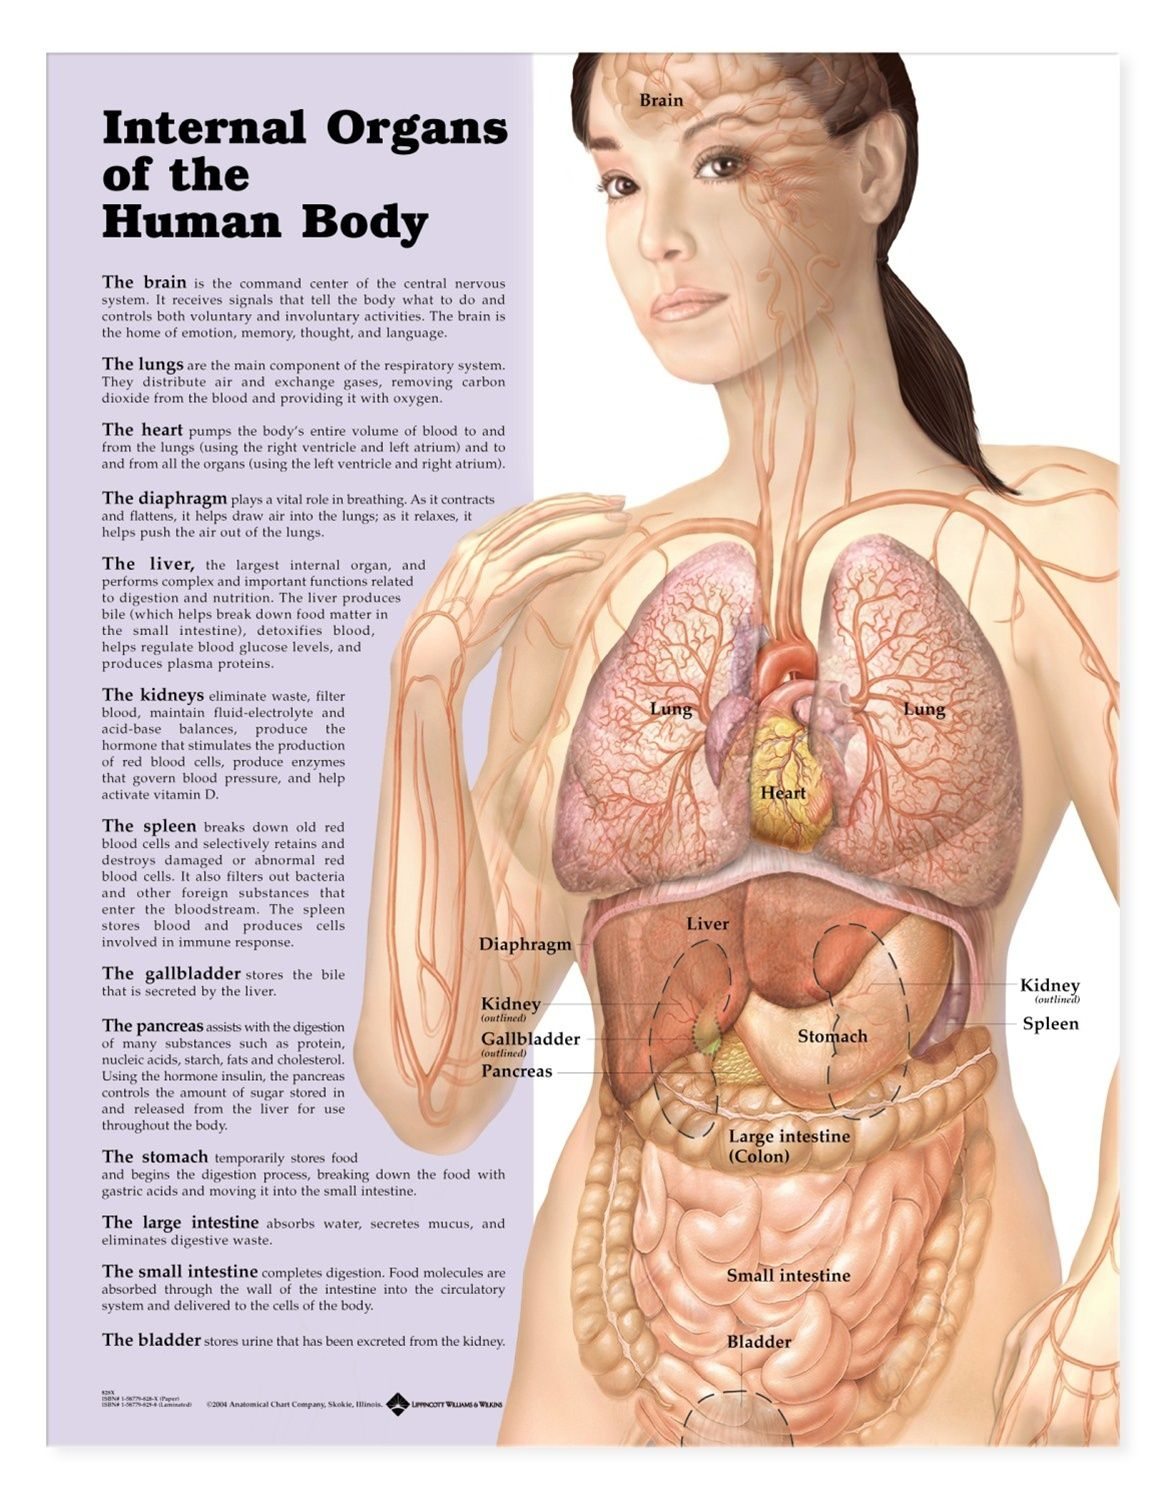 Internal Organs of the Human Body Anatomical Chart | Pinterest ...